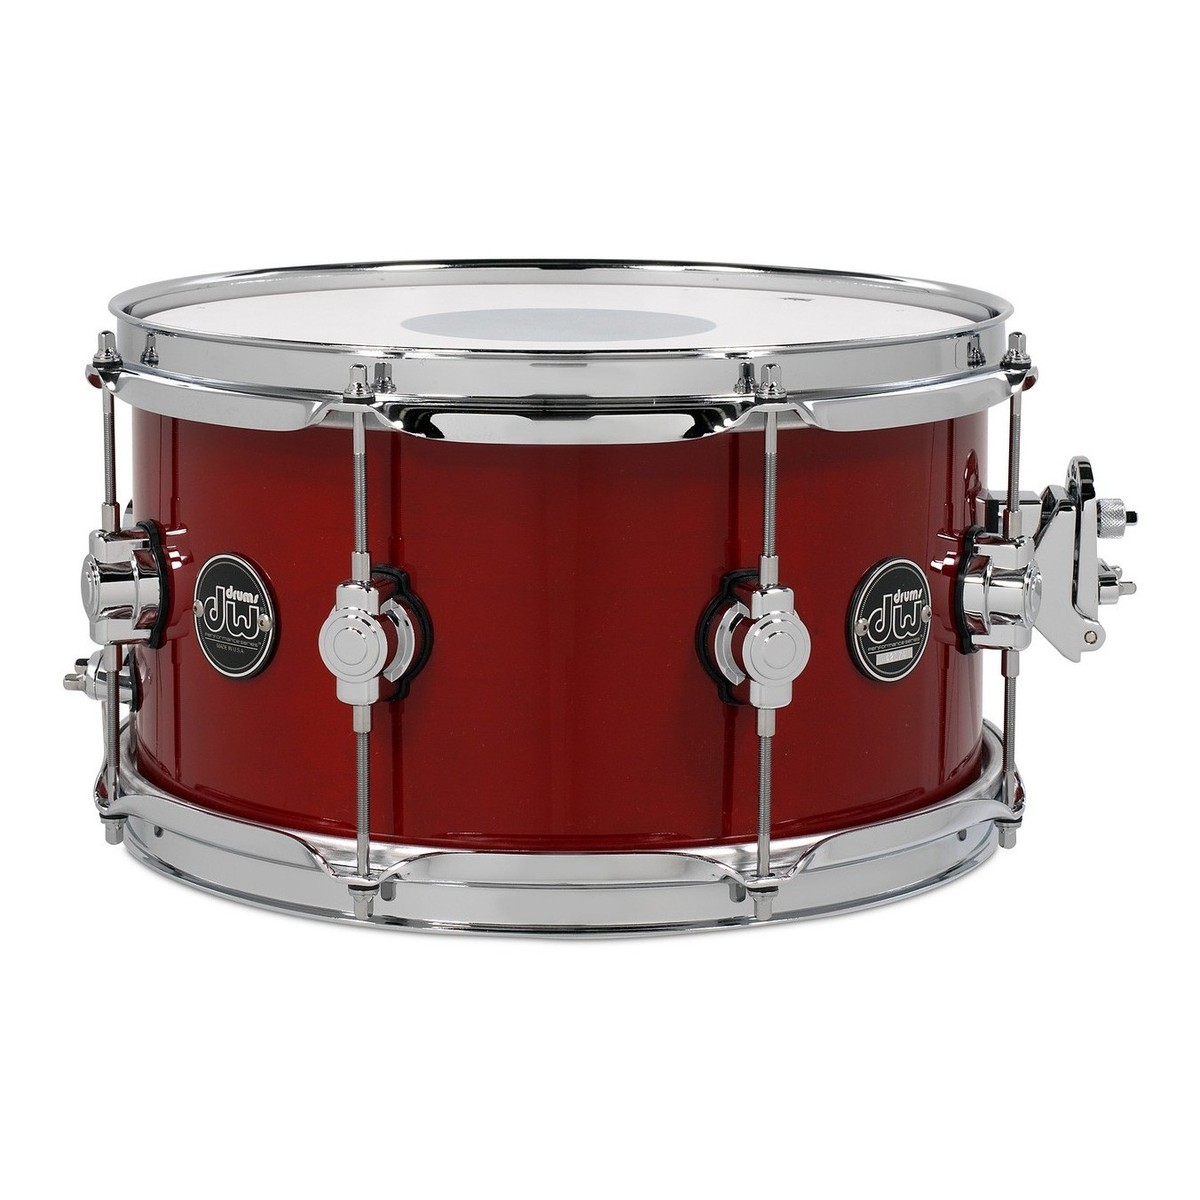 dw drums performance series 13 x 7 snare drum candy apple red at gear4music. Black Bedroom Furniture Sets. Home Design Ideas